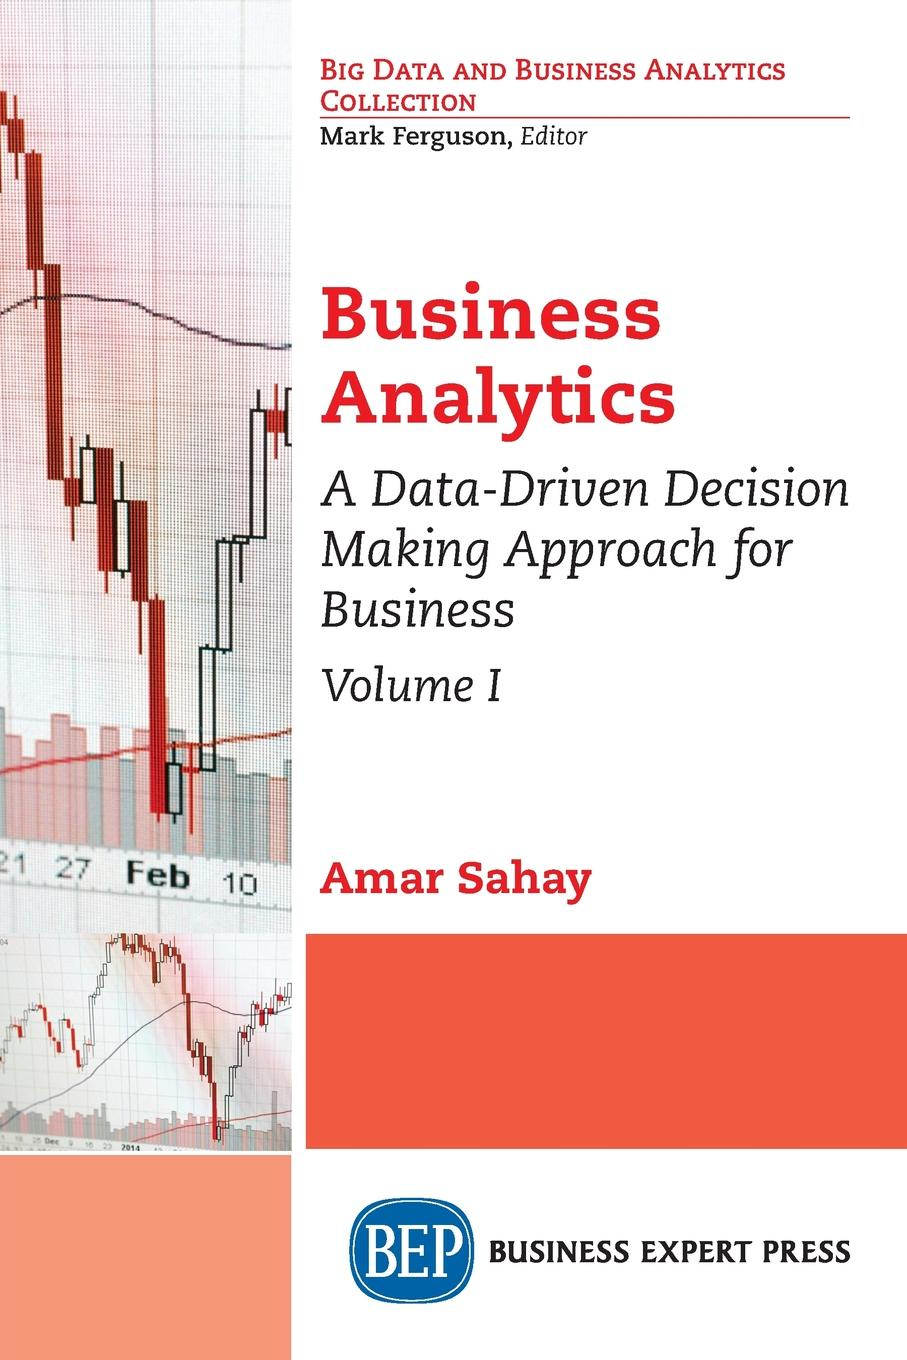 Amar Sahay Business Analytics, Volume I. A Data-Driven Decision Making Approach for Business hwaiyu geng internet of things and data analytics handbook